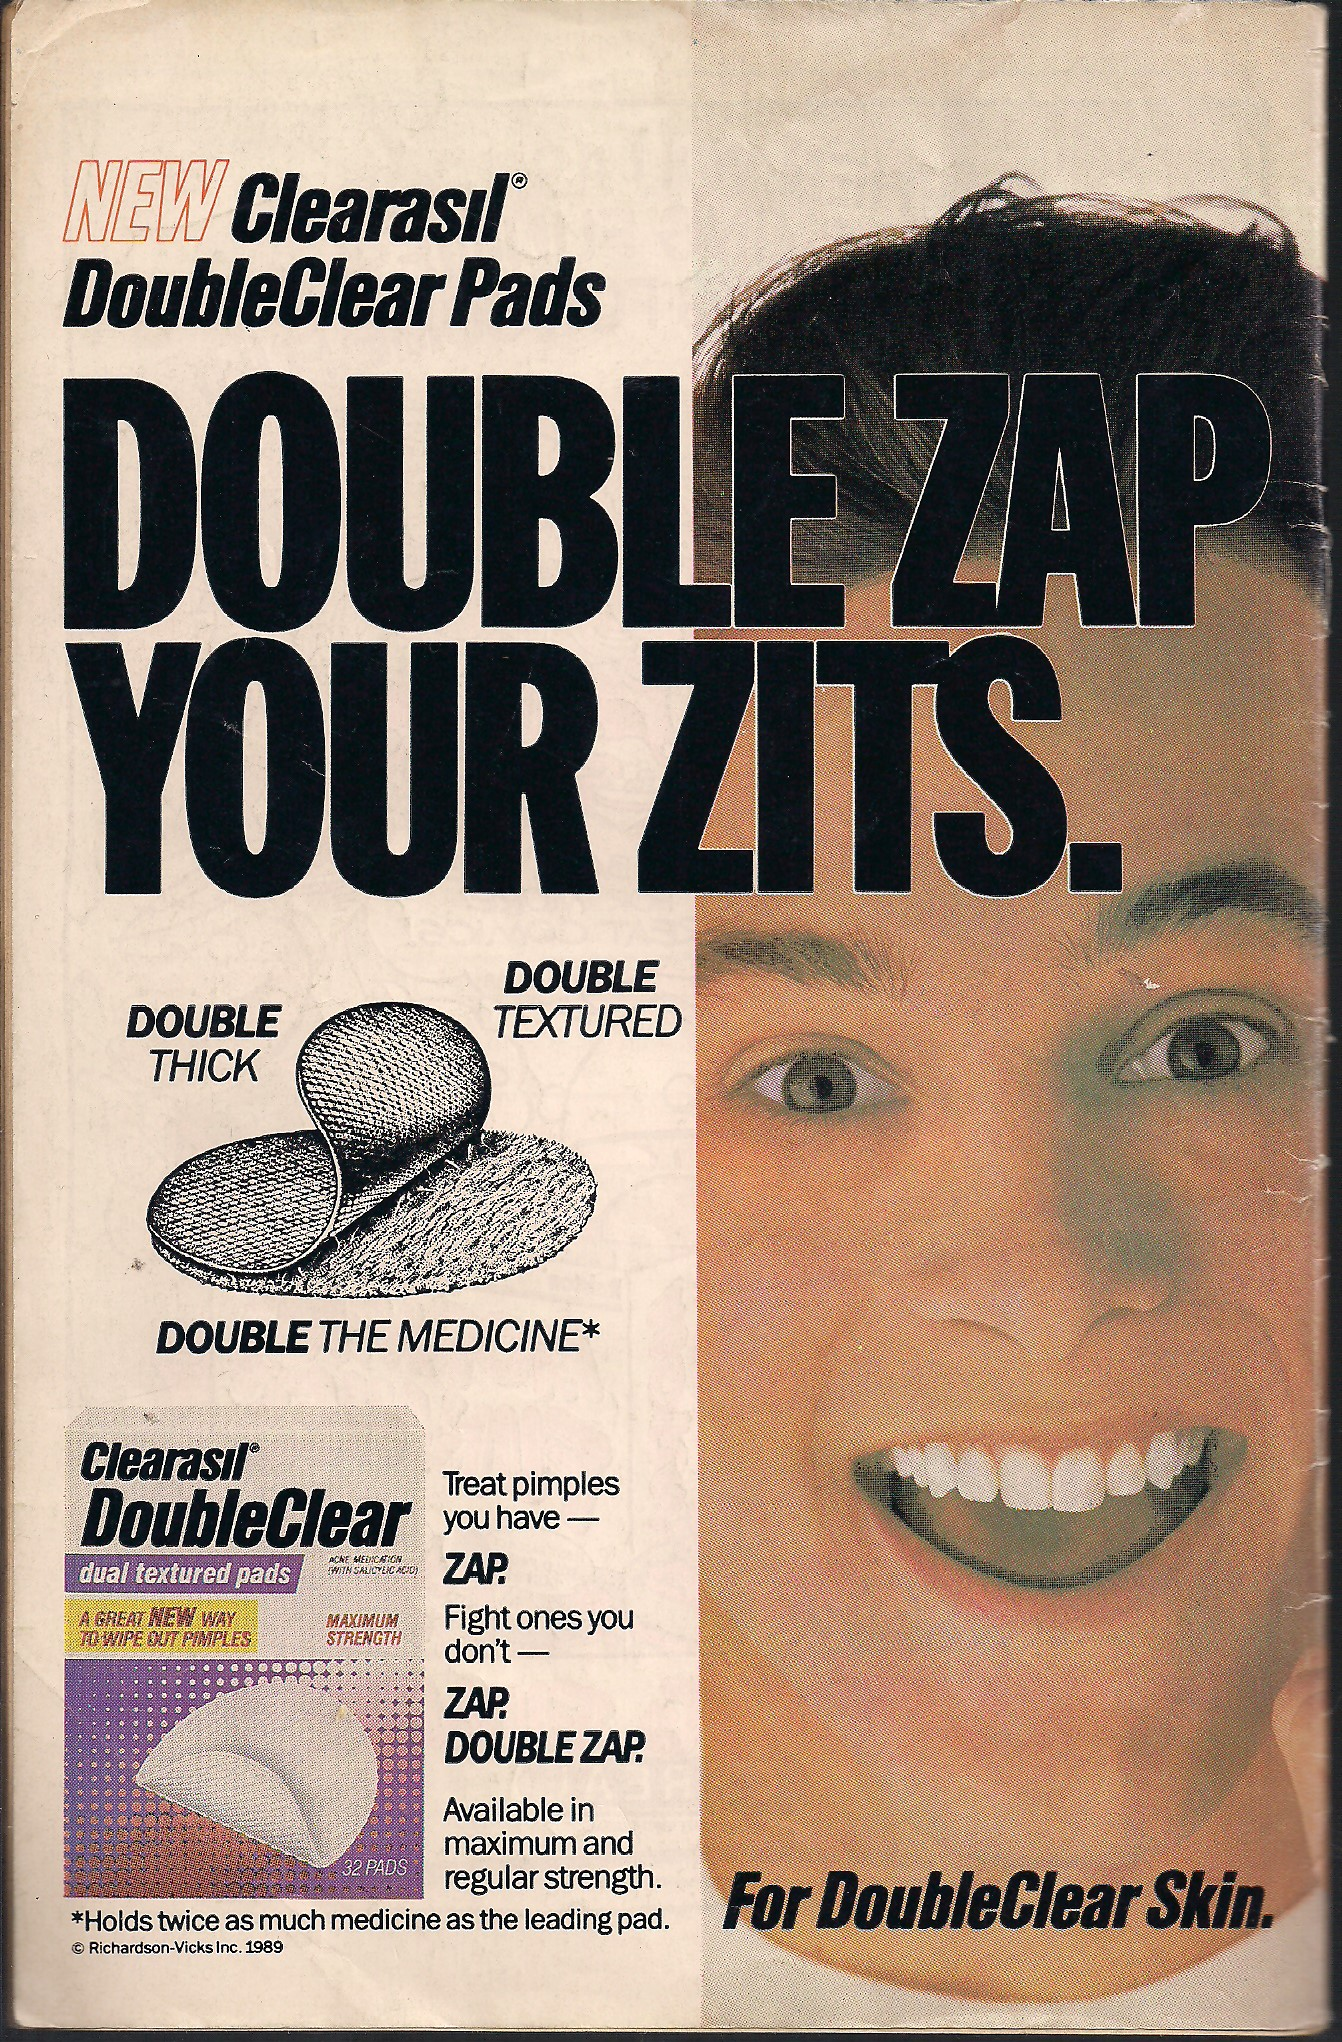 Zap your zits all you want, dude. You're still not getting a date